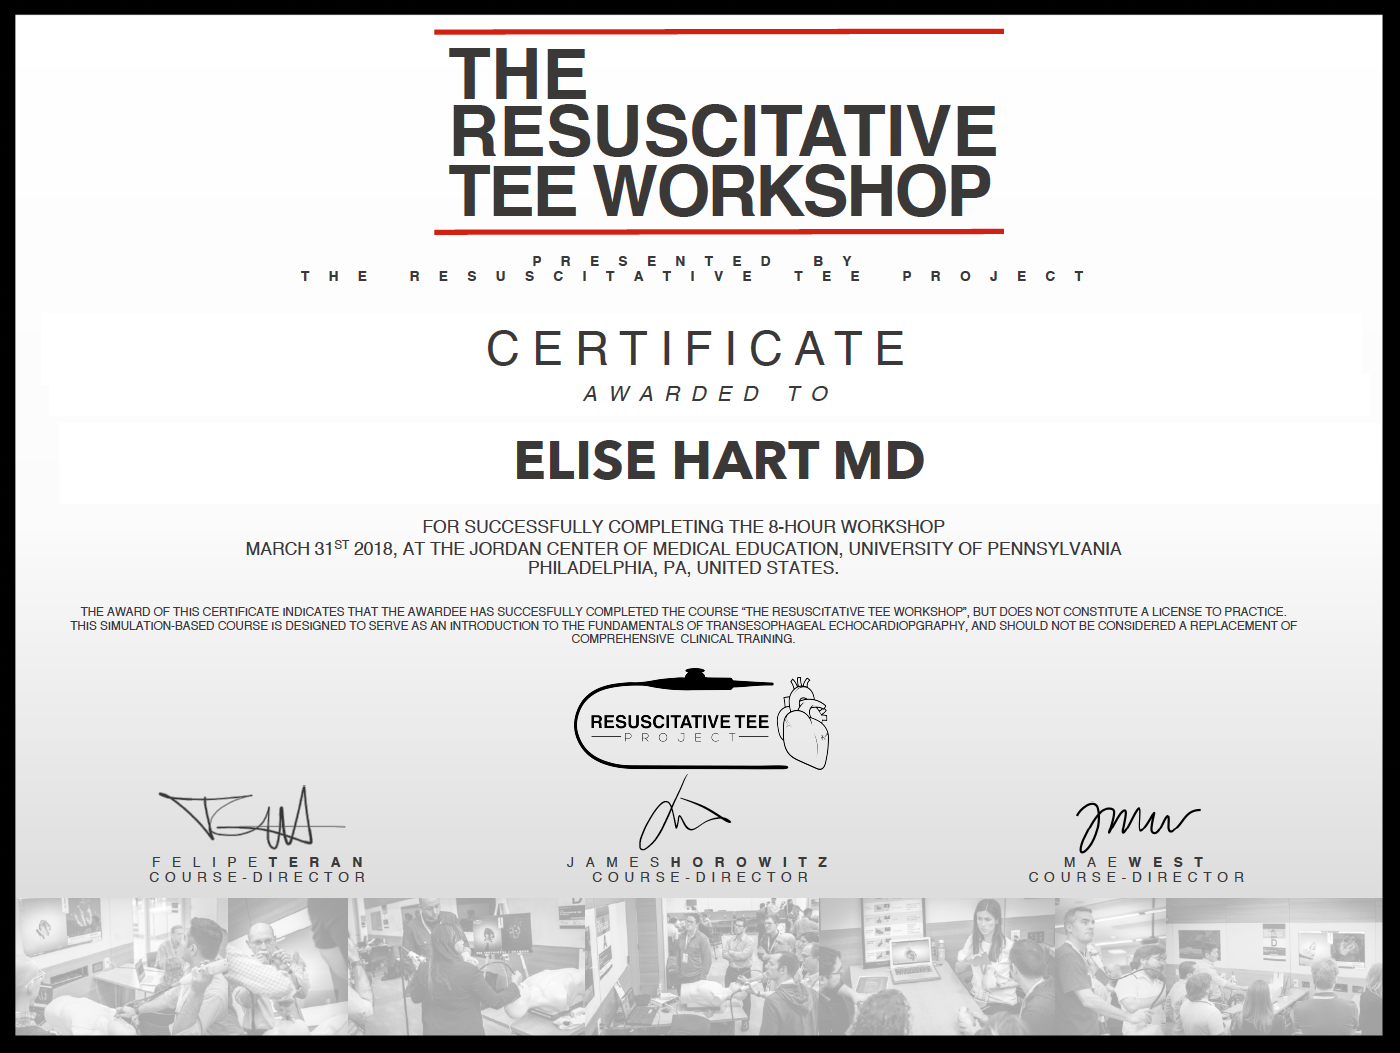 sample of Certificate awarded to participants that successfully complete the workshop